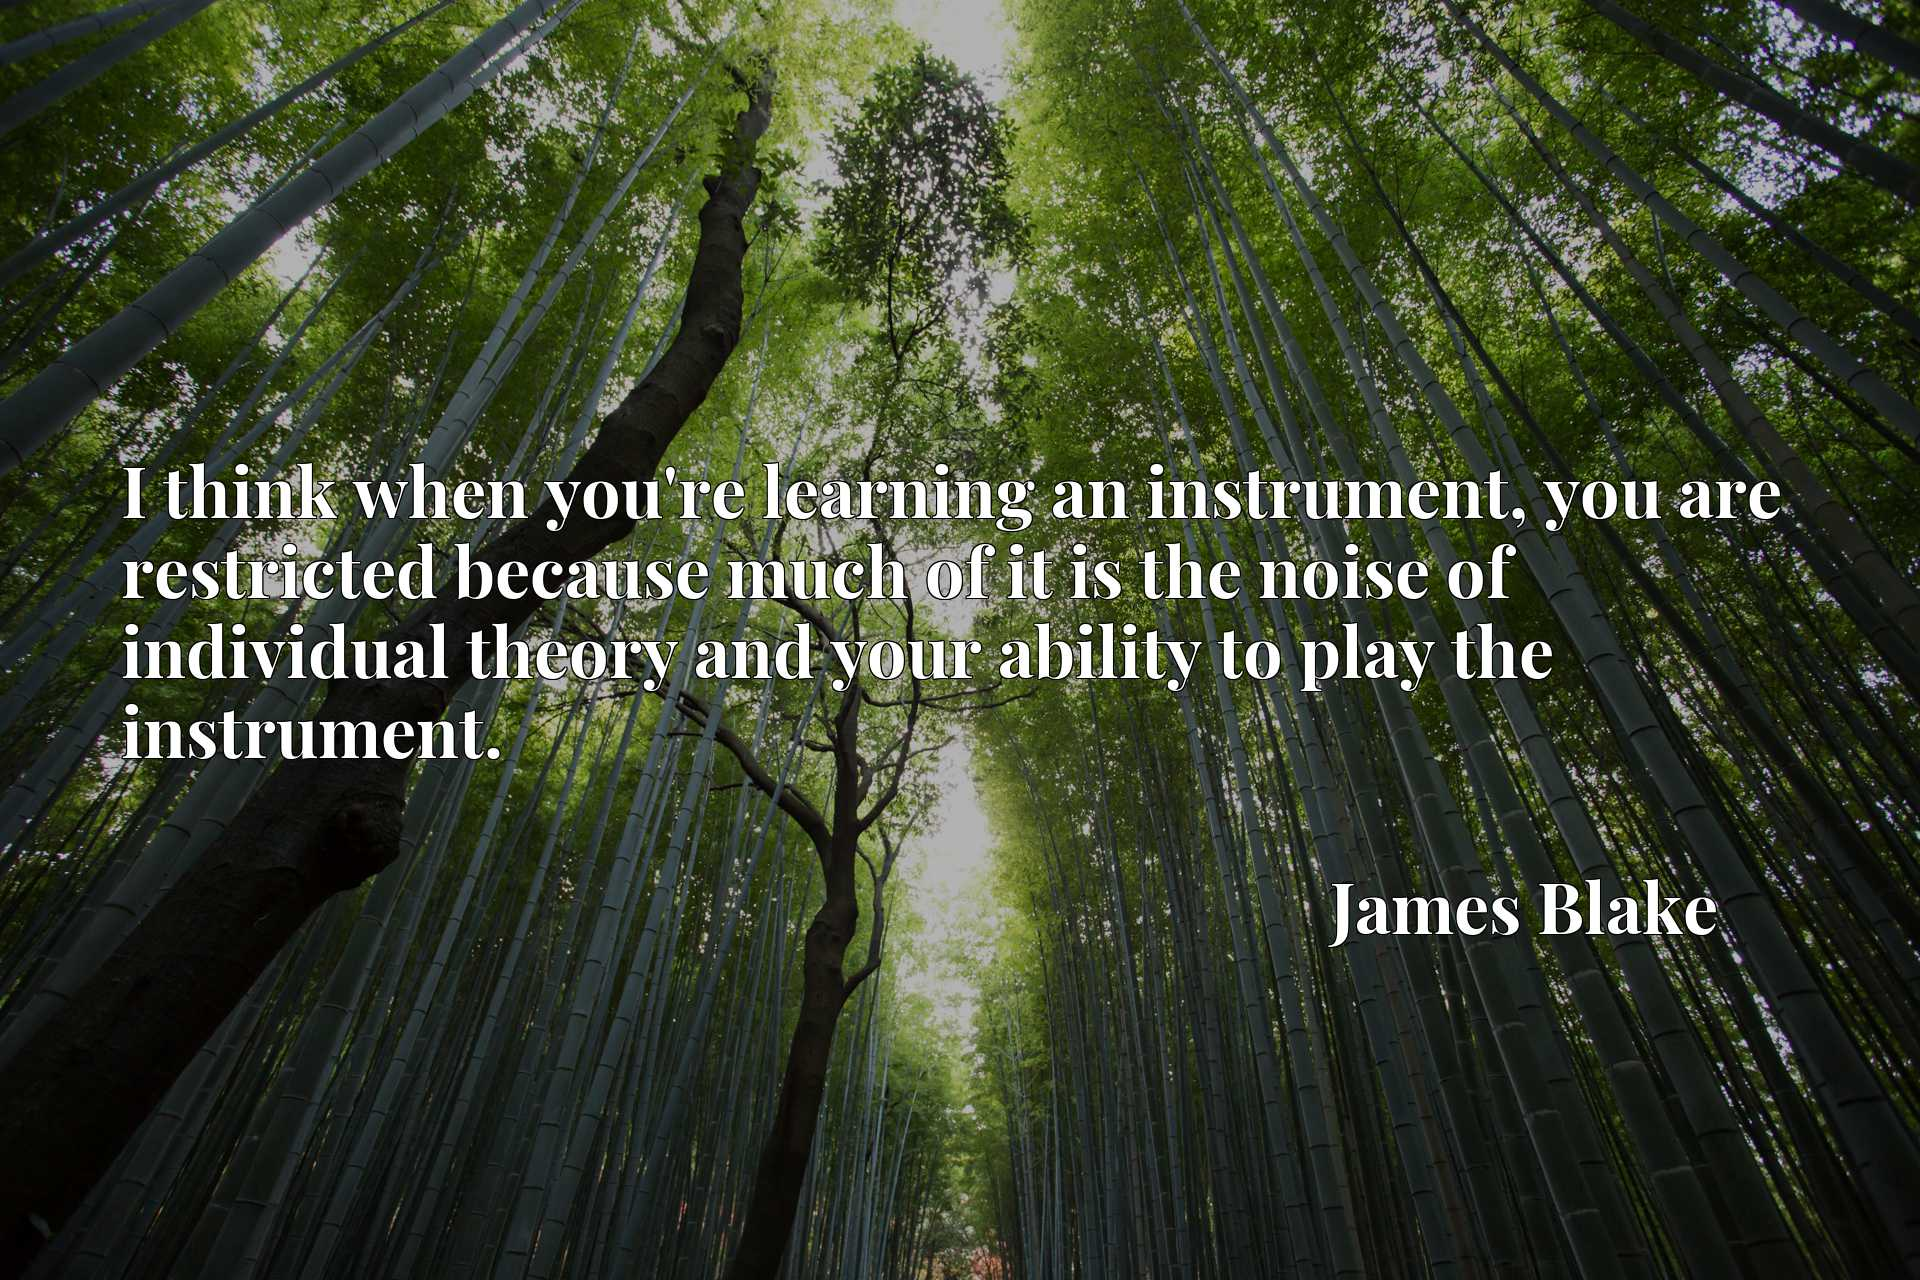 I think when you're learning an instrument, you are restricted because much of it is the noise of individual theory and your ability to play the instrument.